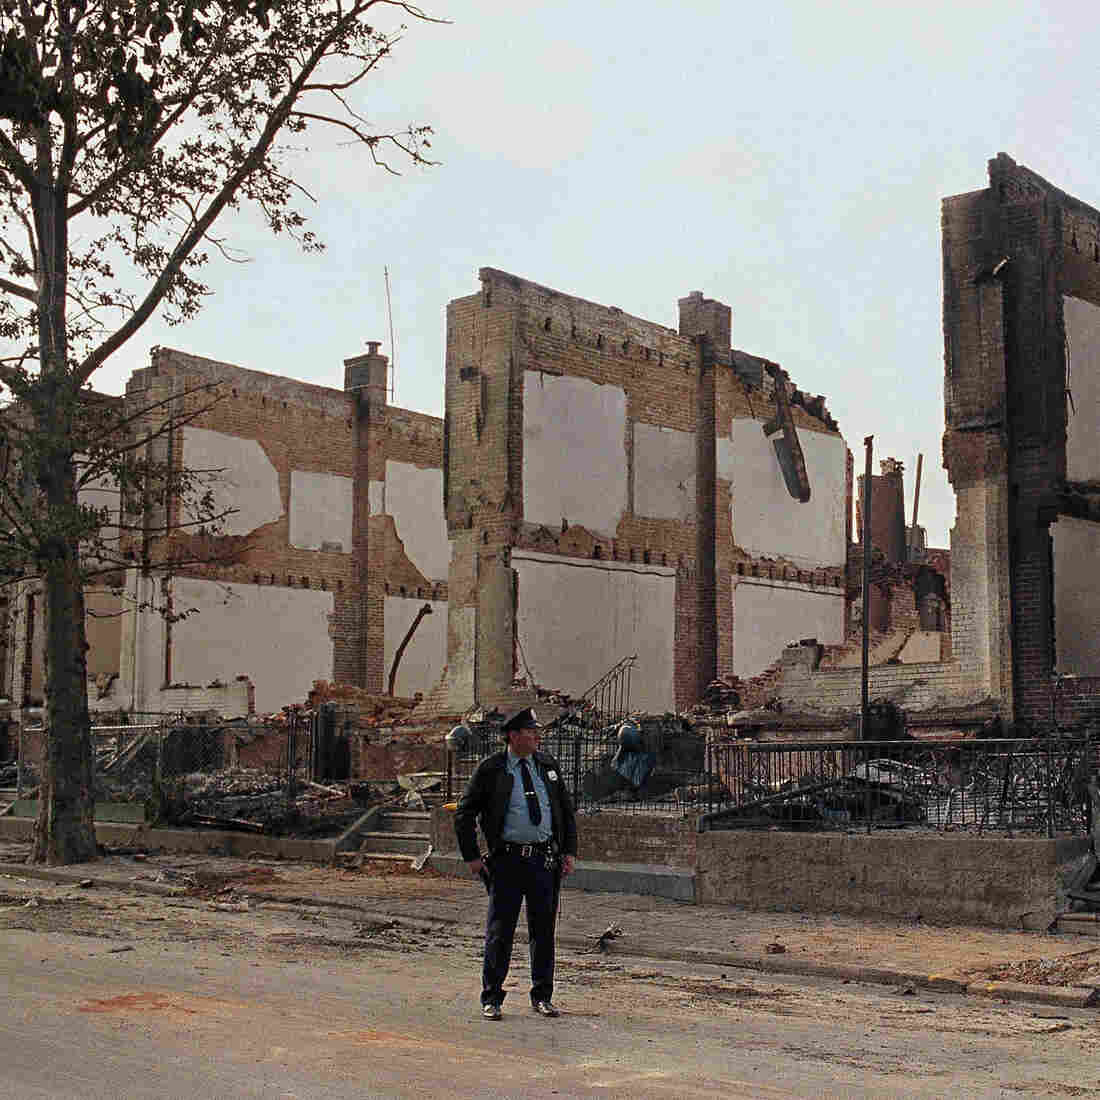 A policeman stands guard on Pine Street in West Philadelphia near the remains of 61 row houses days after they were destroyed by fire on May 13, 1985, when police dropped explosives into a house occupied by members of the radical group MOVE.